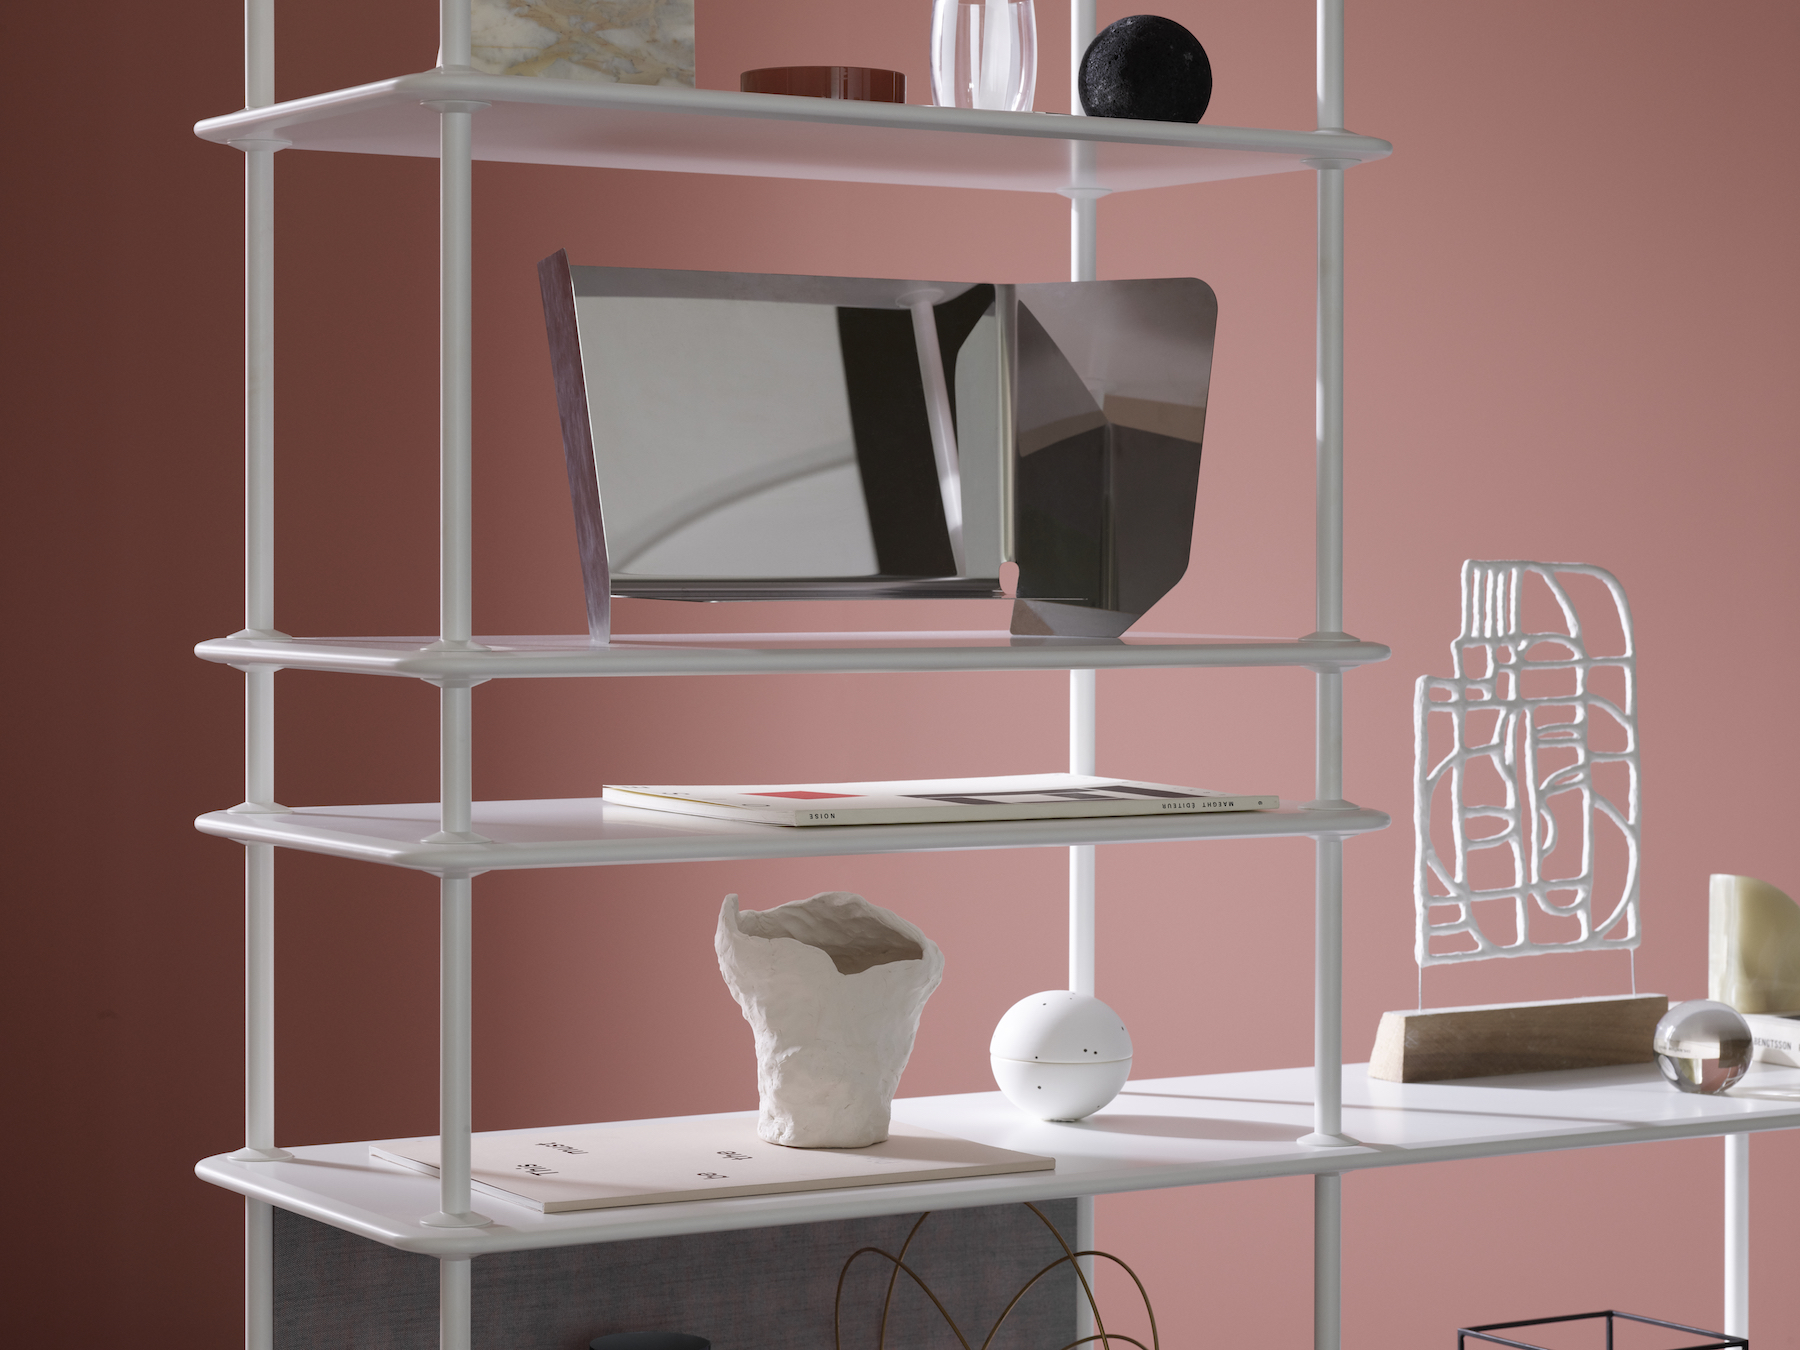 Montana Free Shelving ChinaRed, storage solutions, scandinavian design, interiors styling 3.jpg